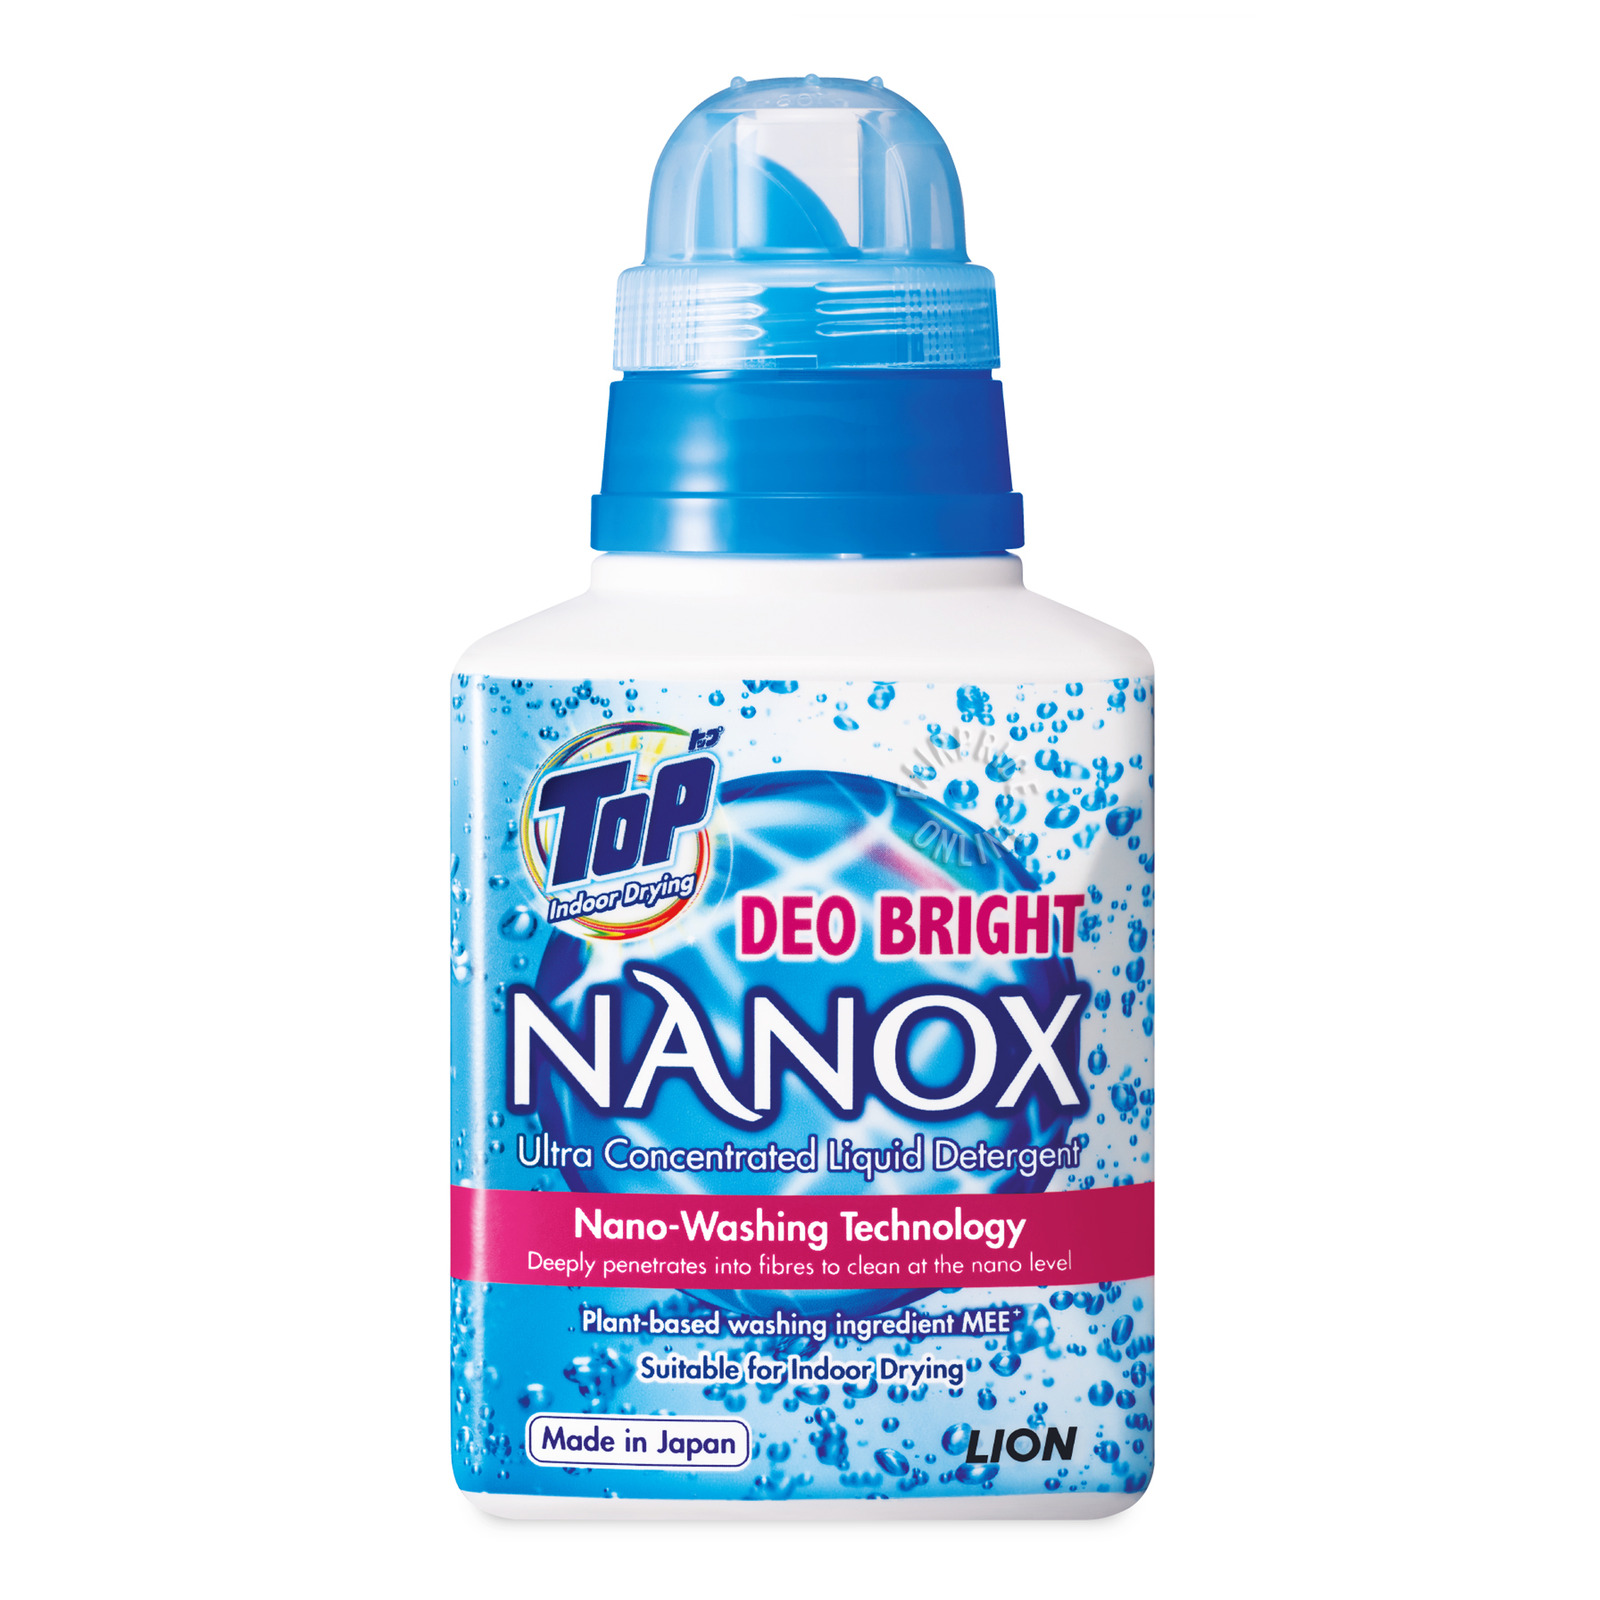 Top Nanox Ultra Concentrated Liquid Detergent - Deo Bright